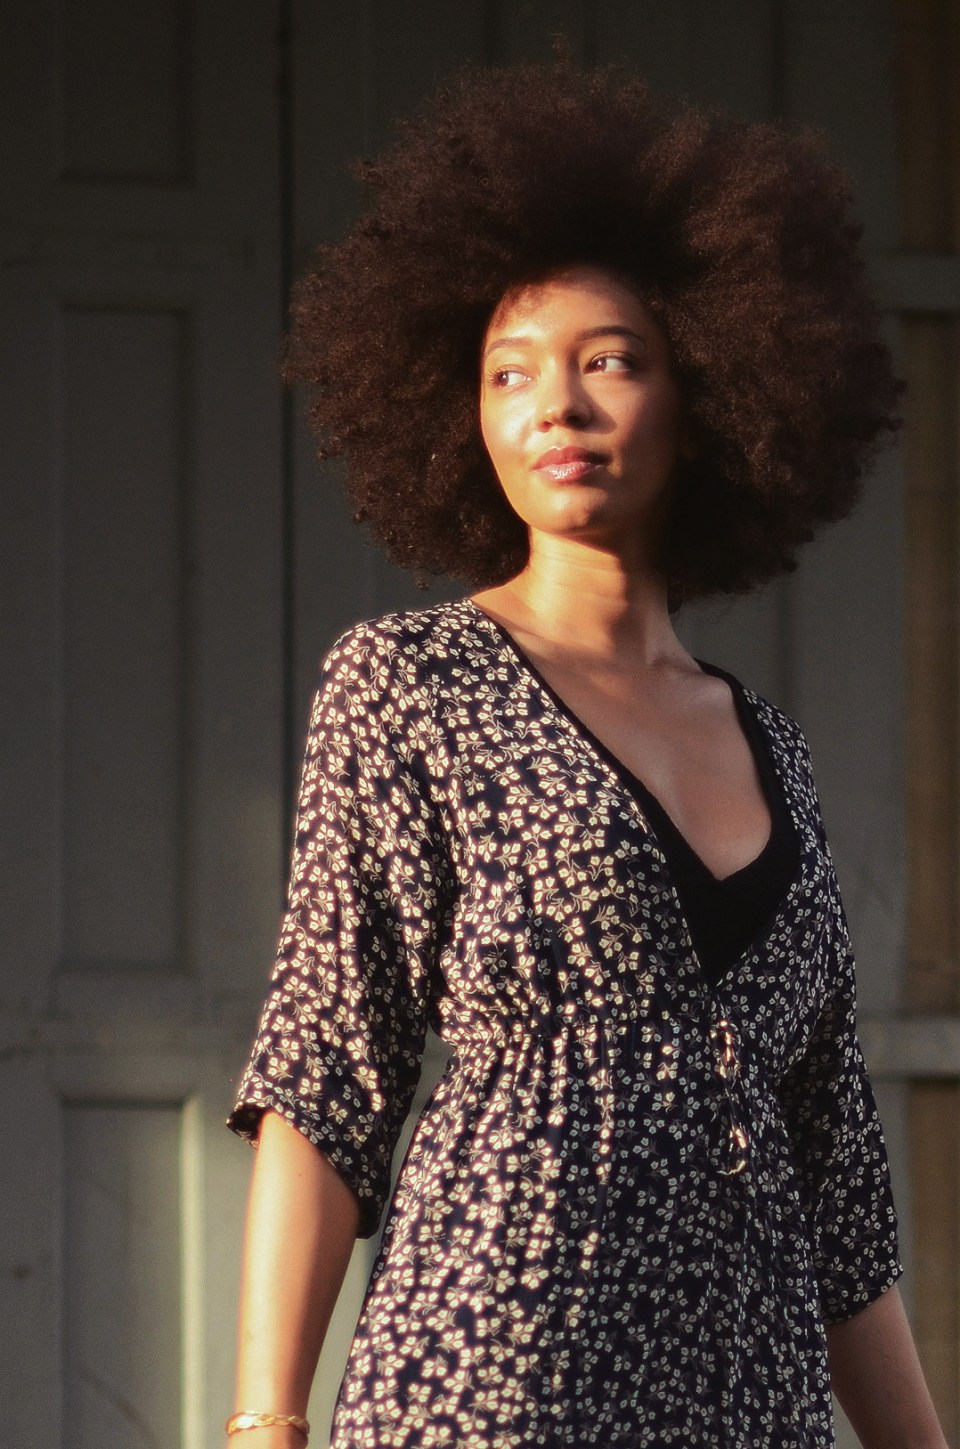 mercredie-blog-mode-geneve-blogueuse-bloggeuse-suisse-swiss-switzerland-robe-ganni-dress-floral-afro-hair-nappy-curly-curls-big-fro-cheveux-frises2-2